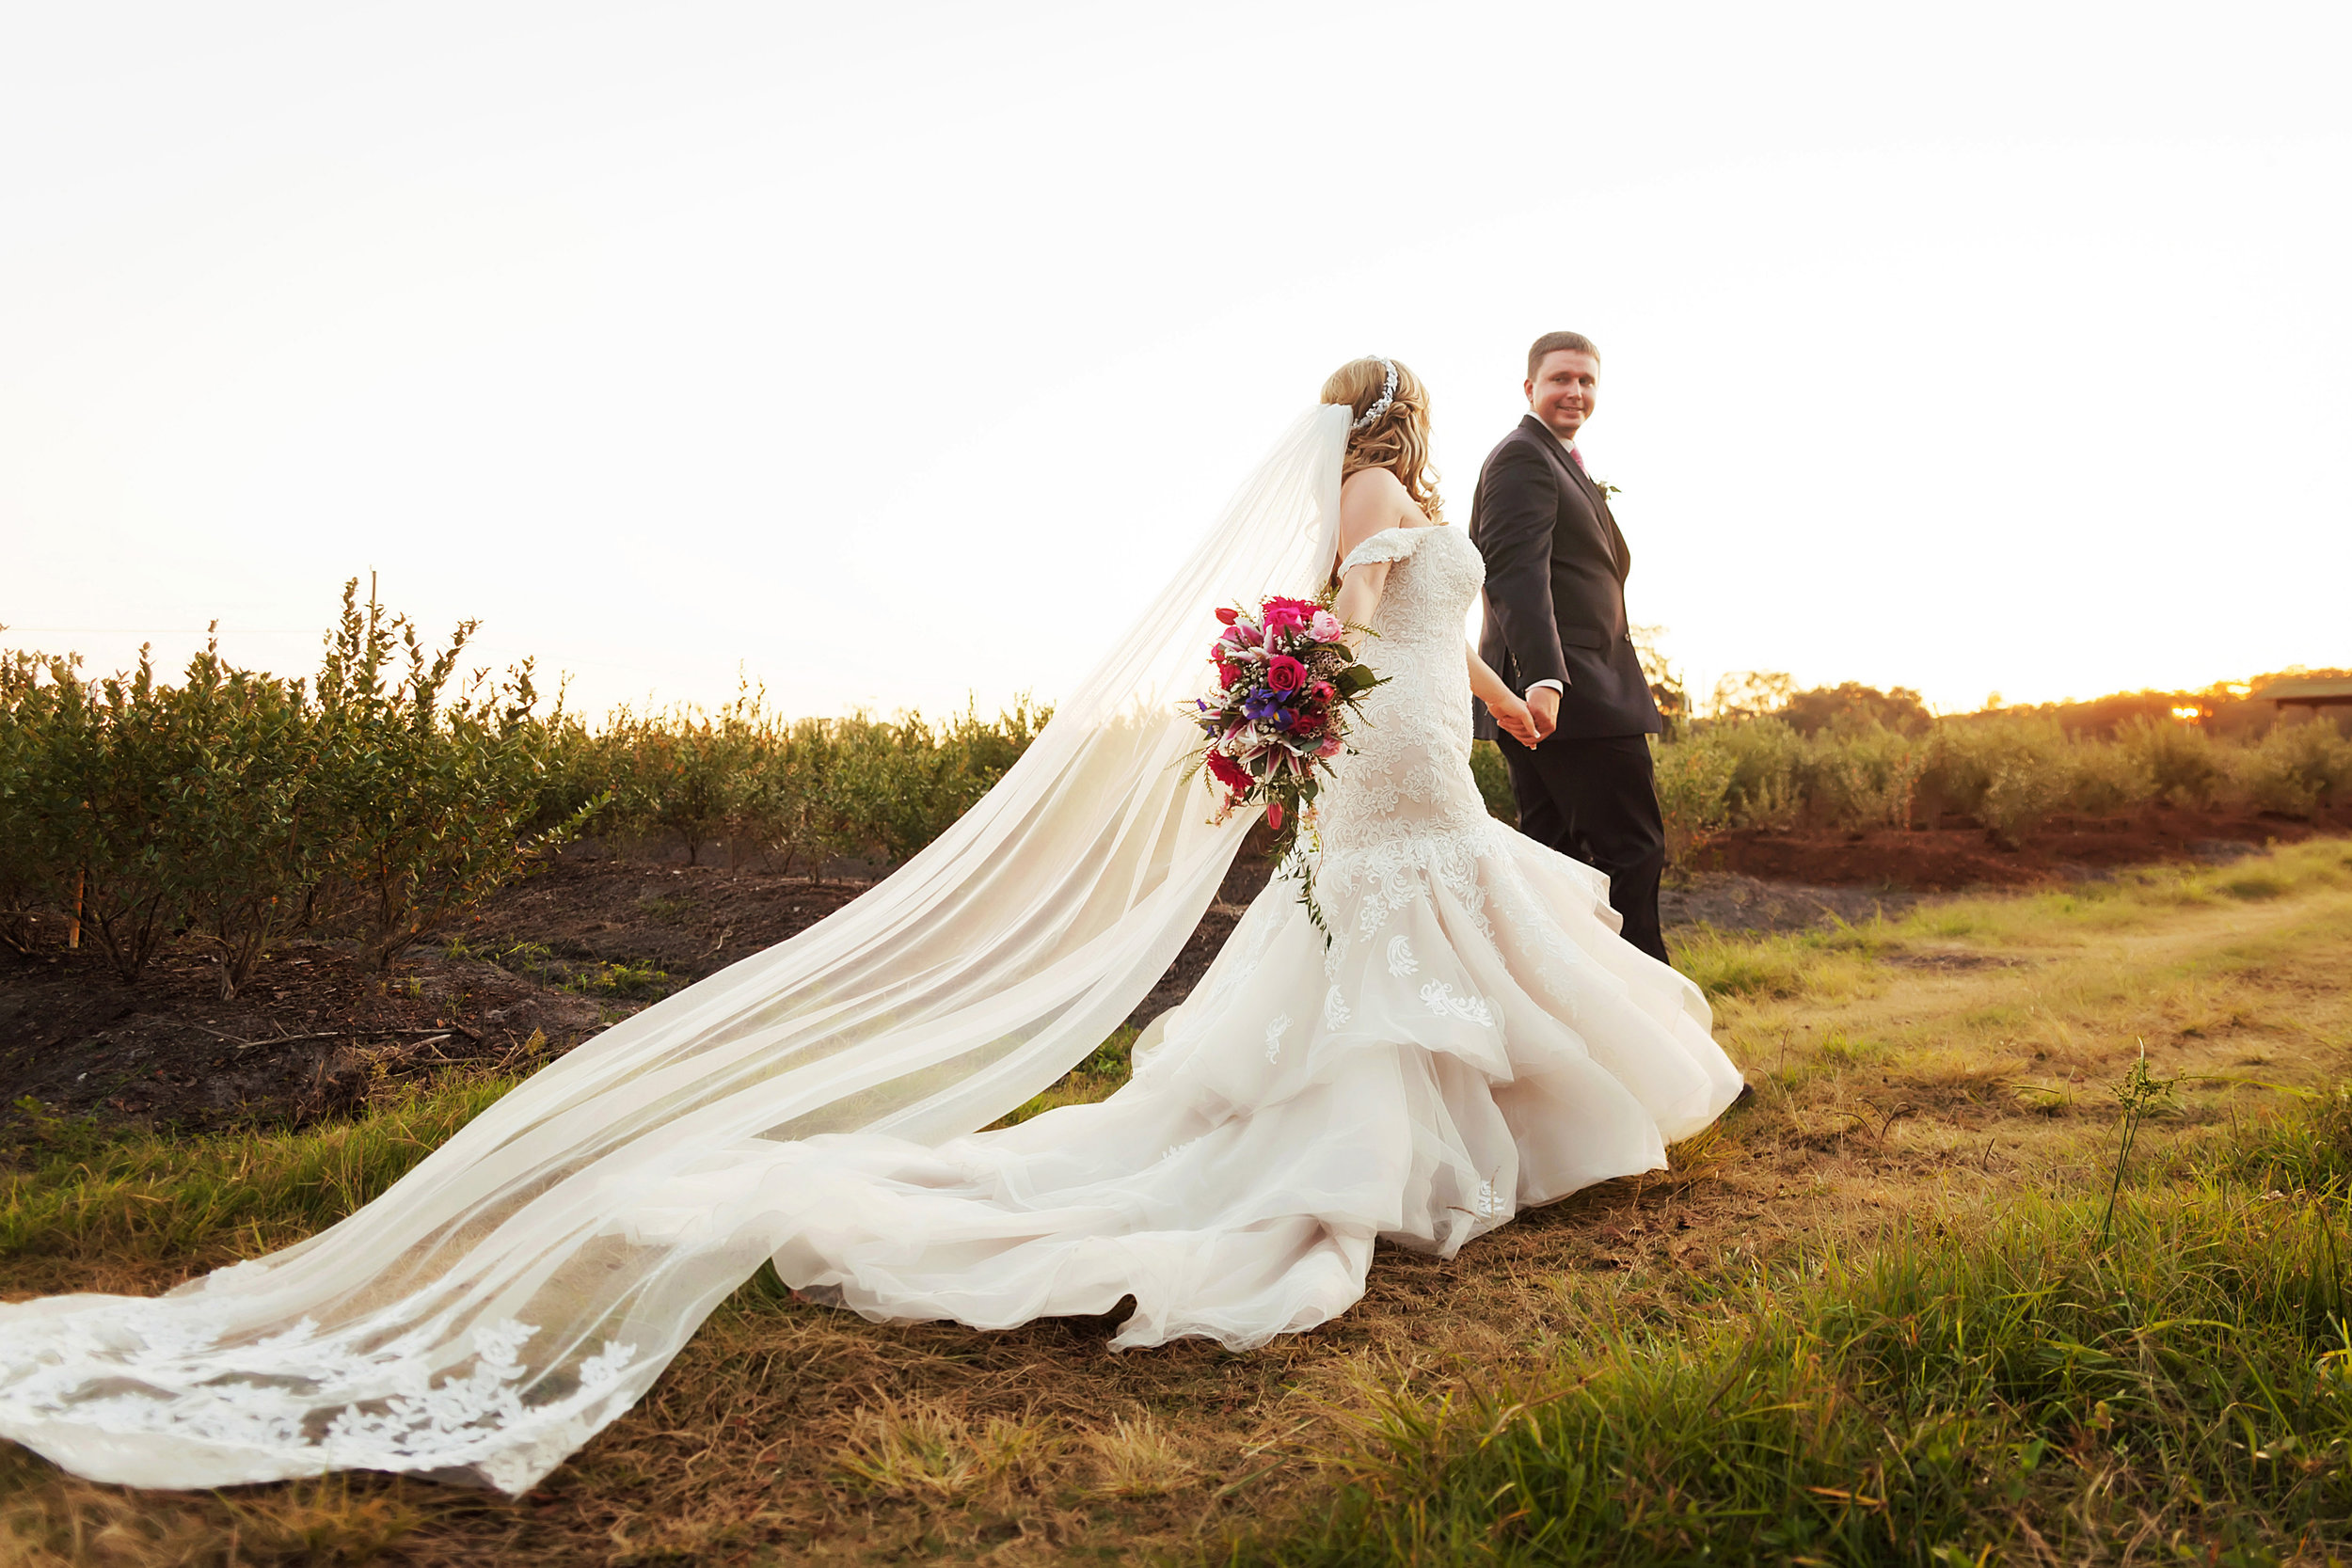 indigo harvest events, barn wedding, pink roses, romance, lace veil, flowing train wedding gown, wedding photography, limelight photography